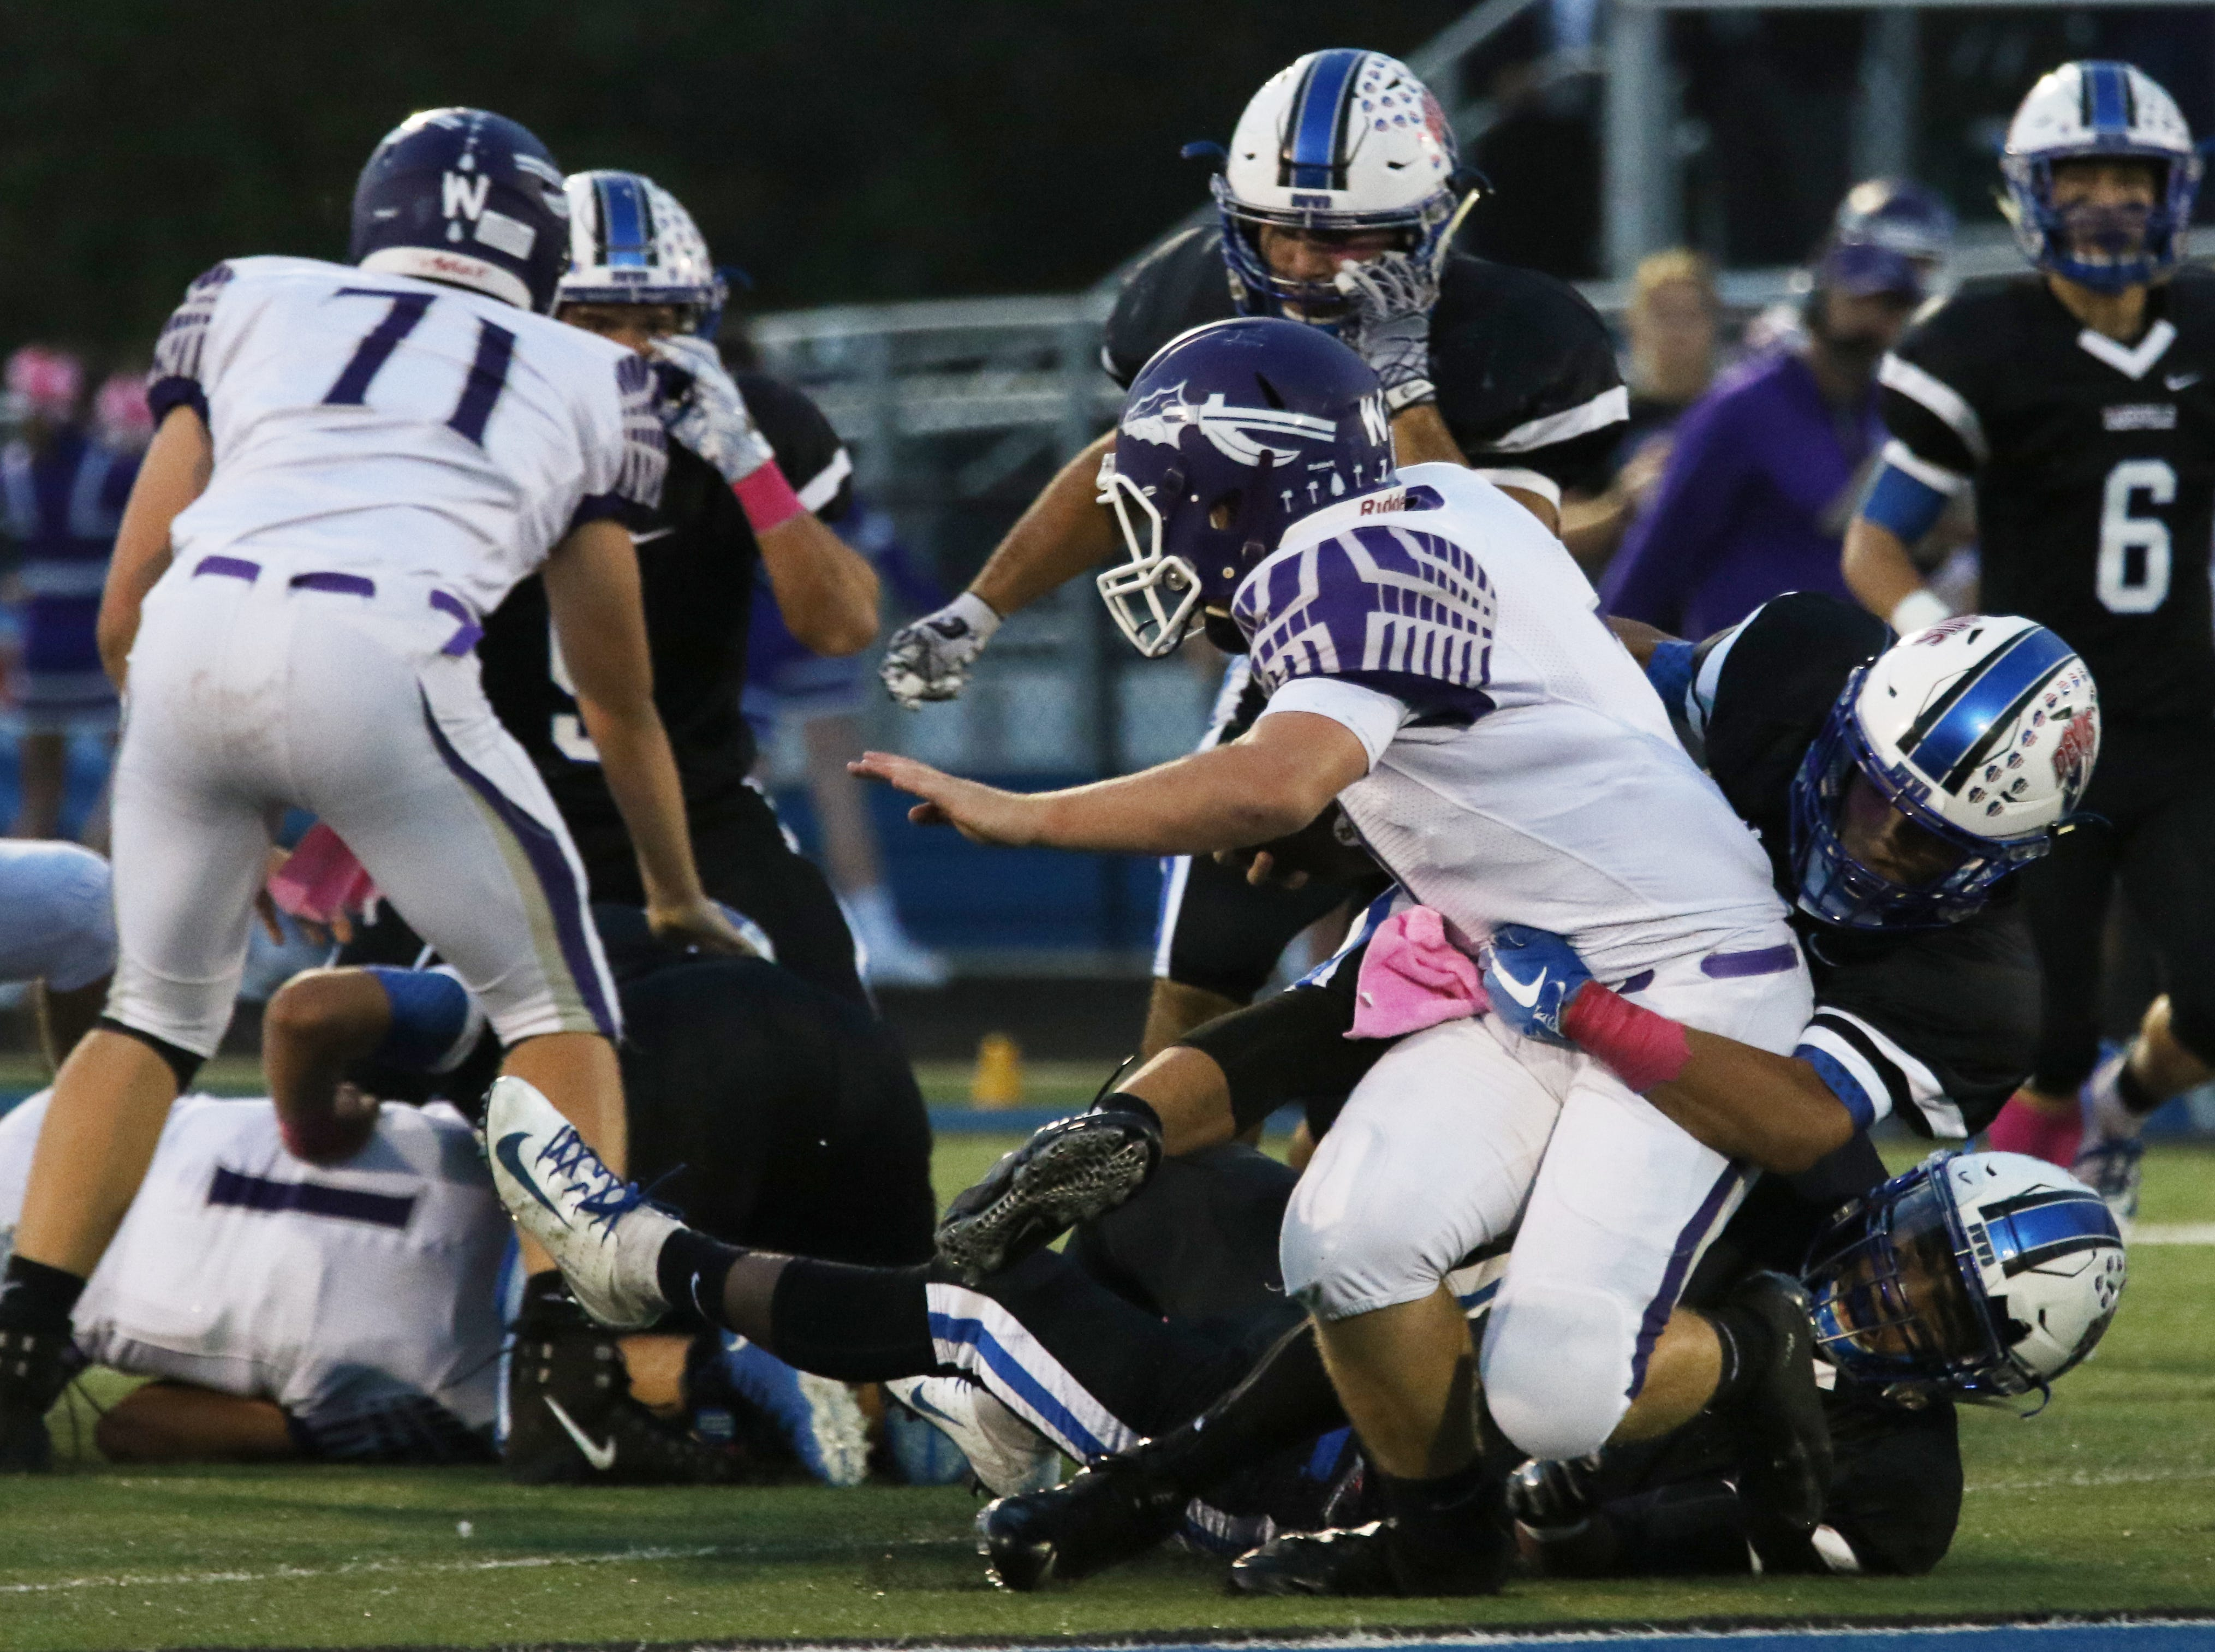 A pair of Zanesville defenders take down a Logan ball carrier.